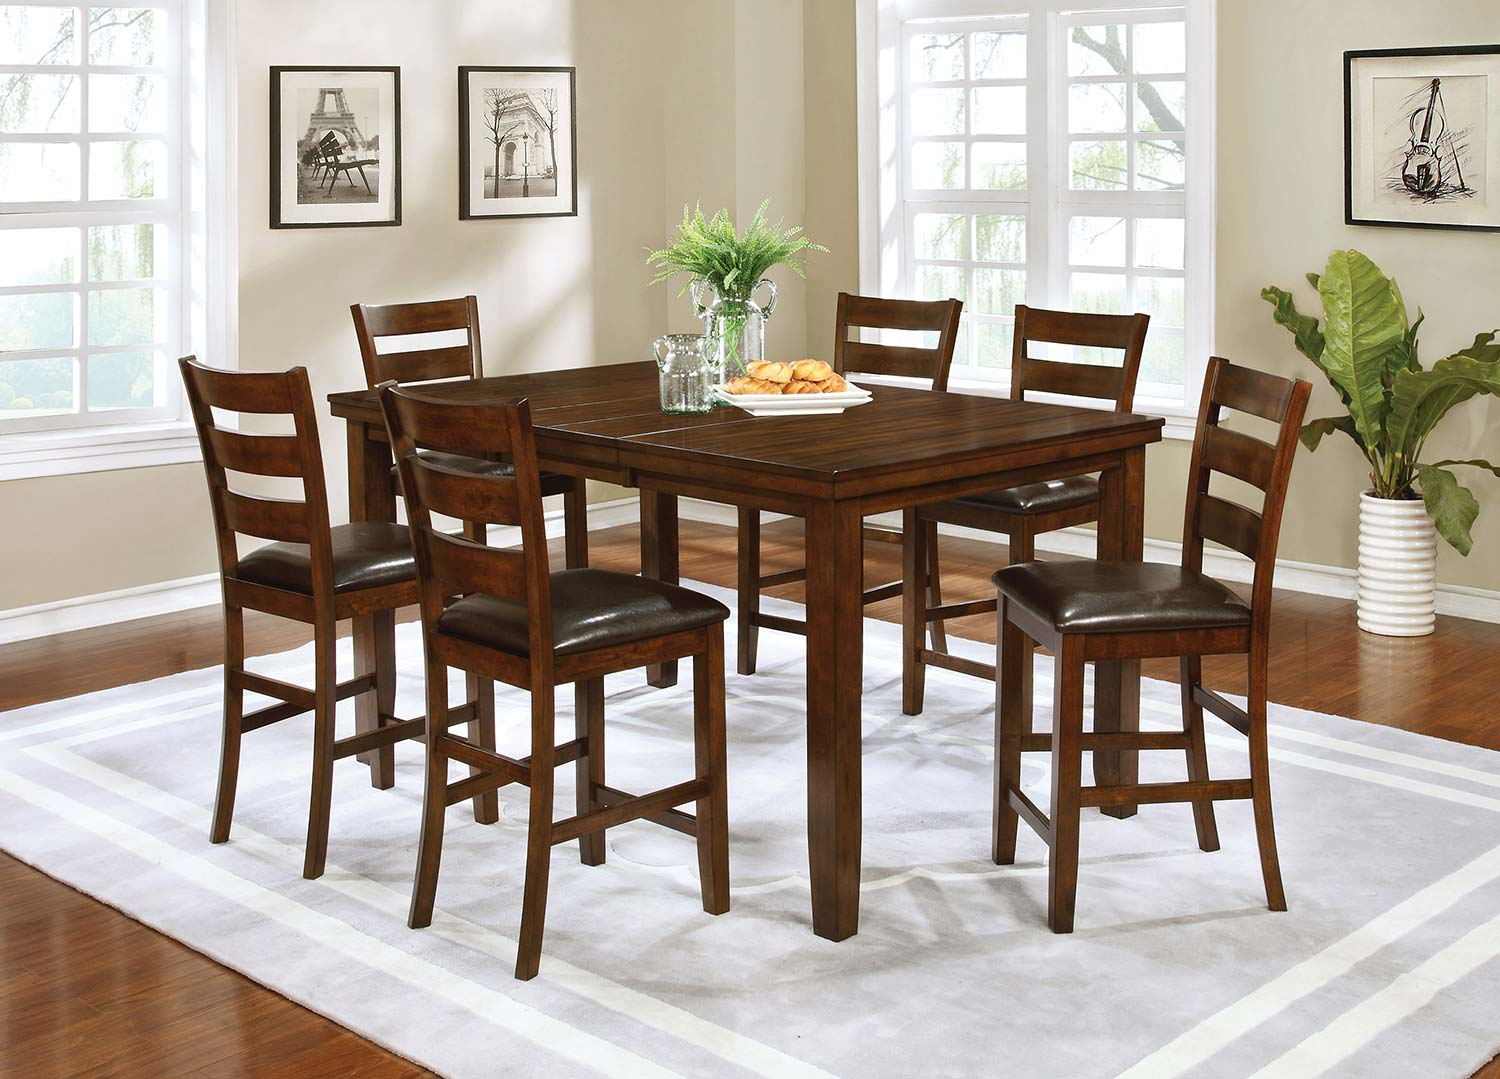 Coaster Maxwell Rectangular Counter Height Dining Set - Brown